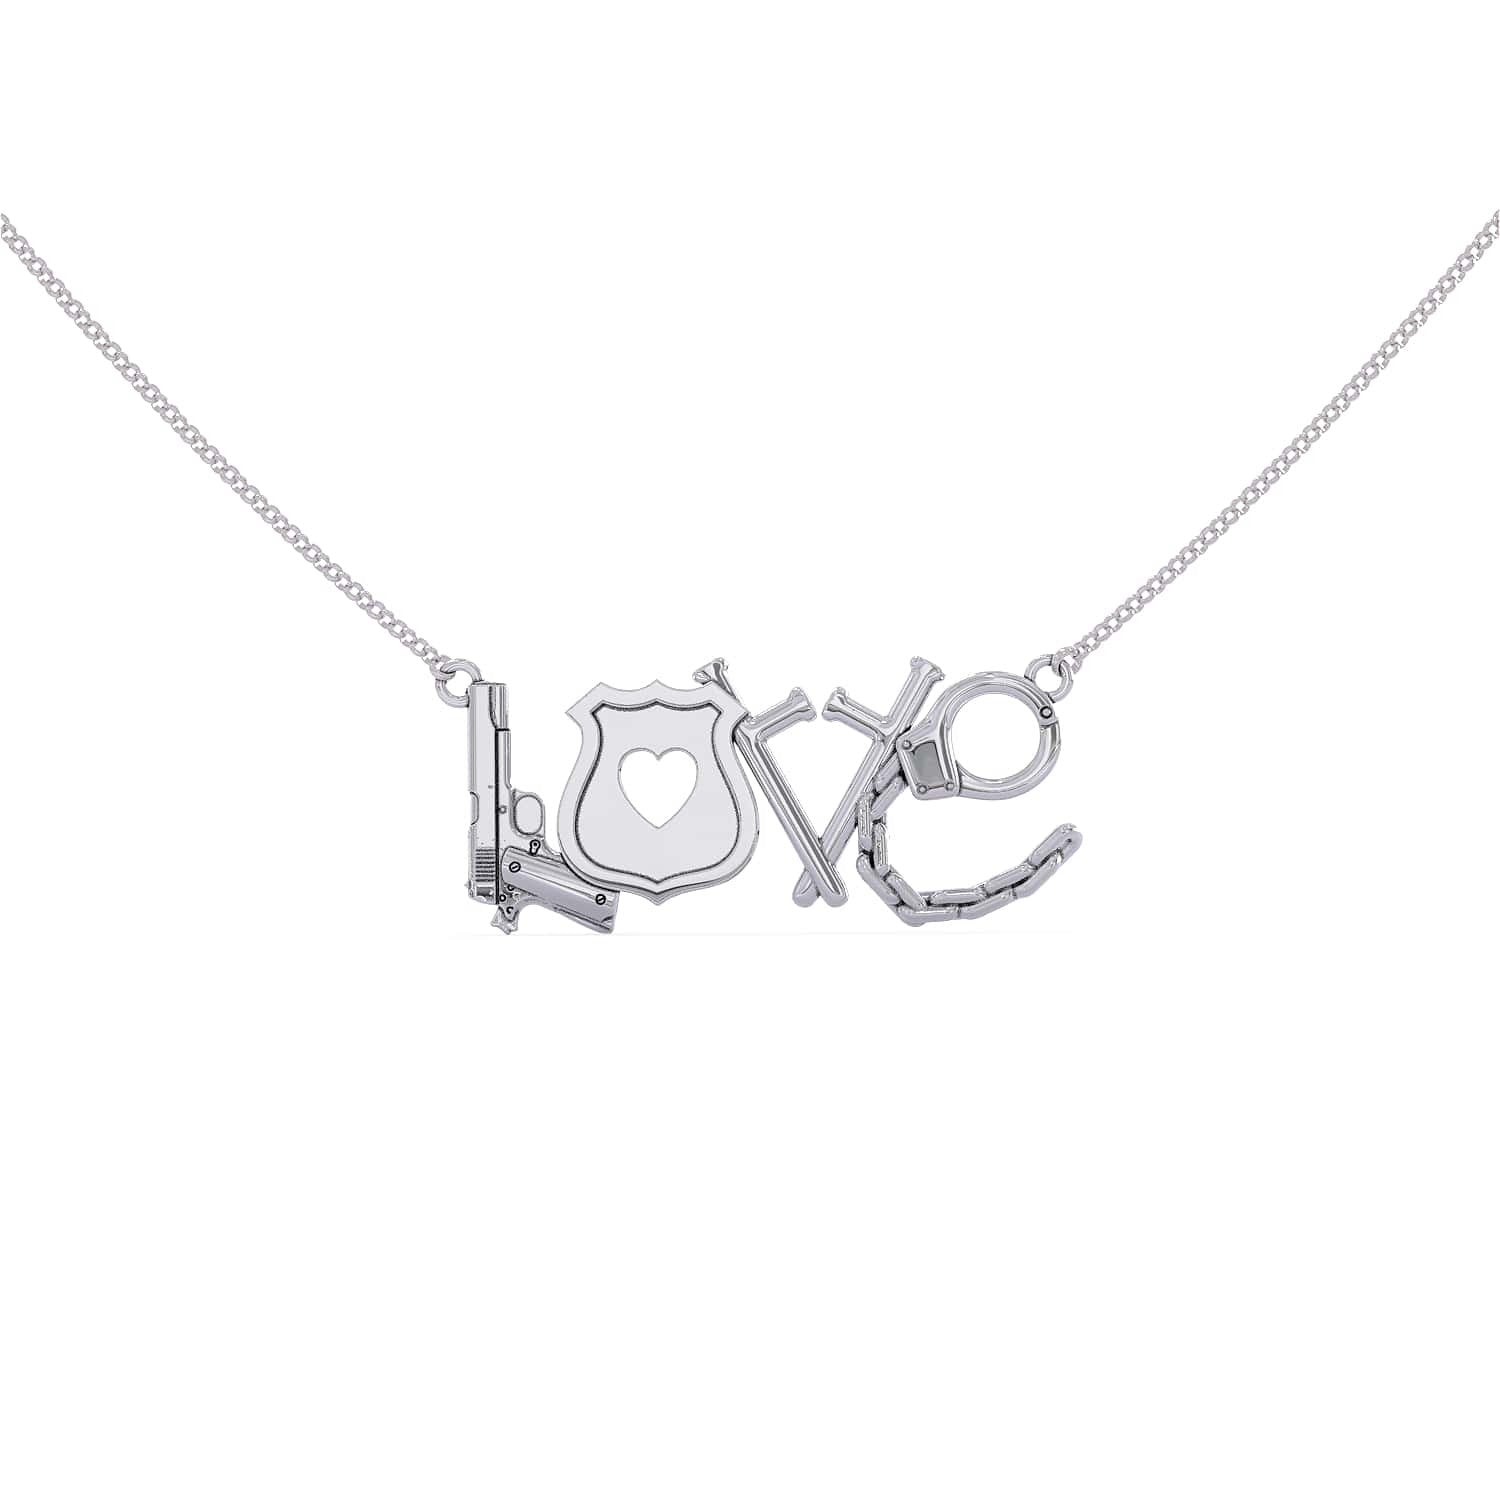 LOVE - Police Necklace